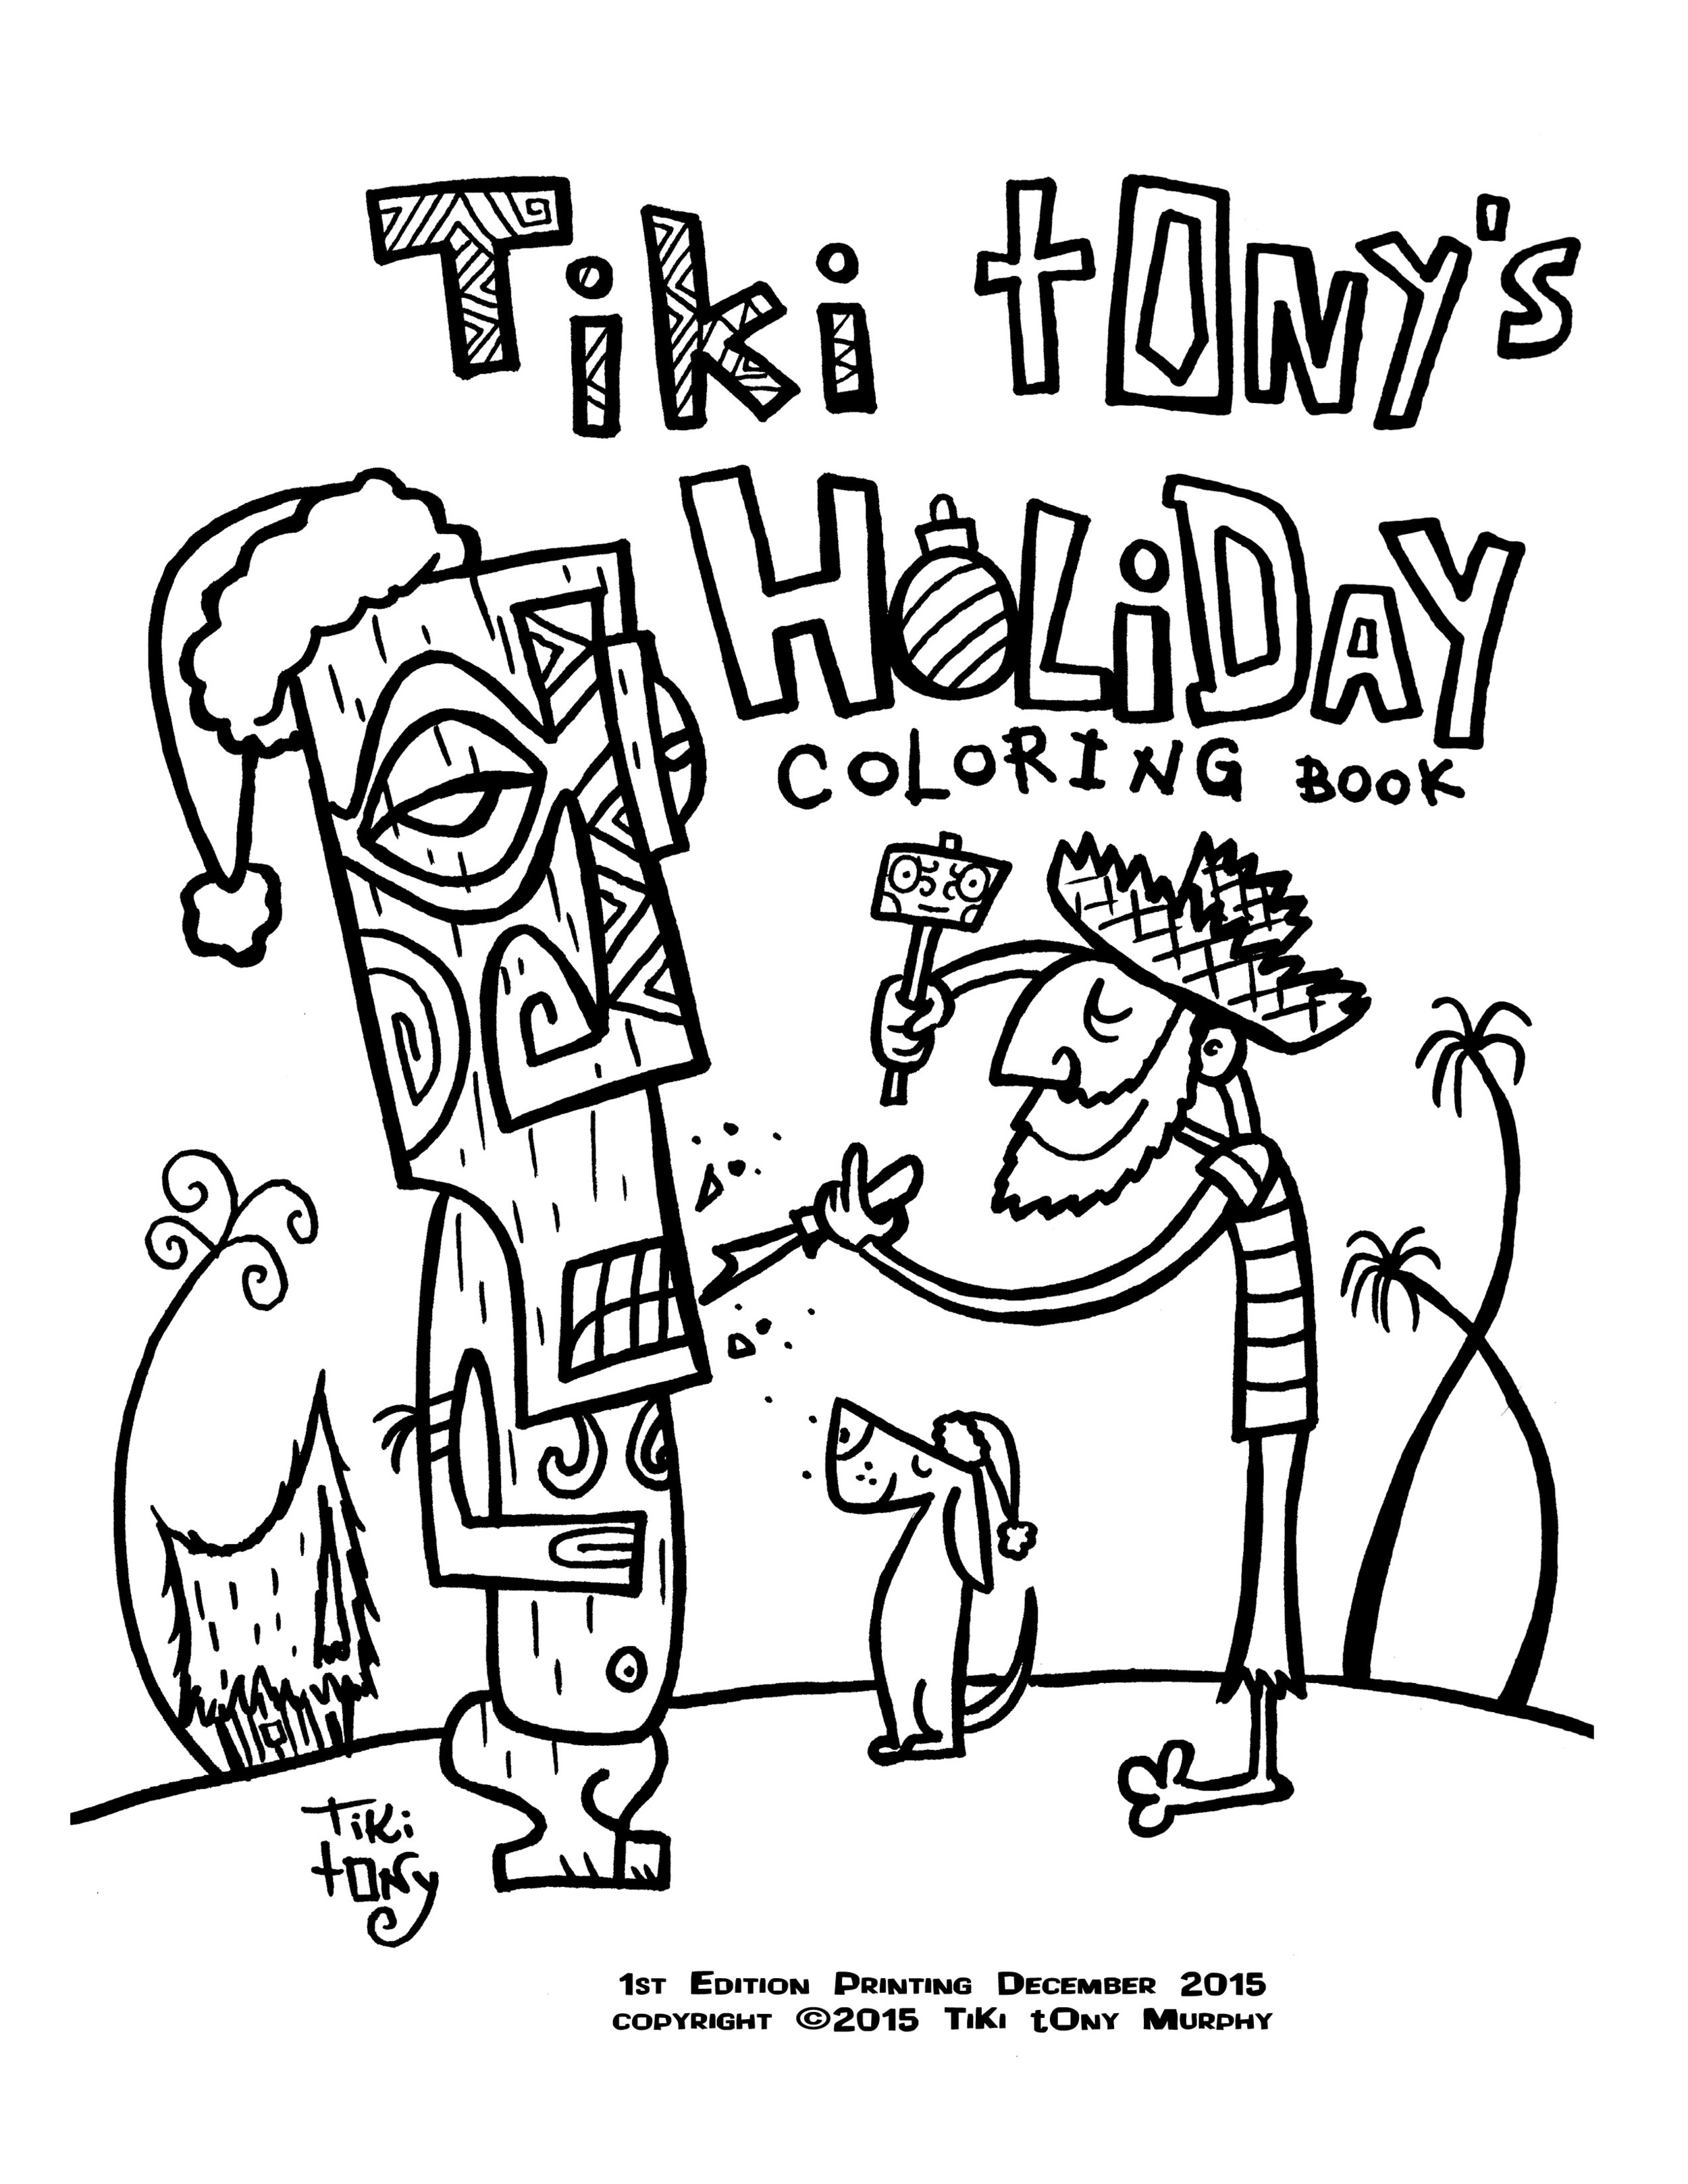 Tiki Tony S Holiday Adult Coloring Book Digital File Only 5 Tiki Tony